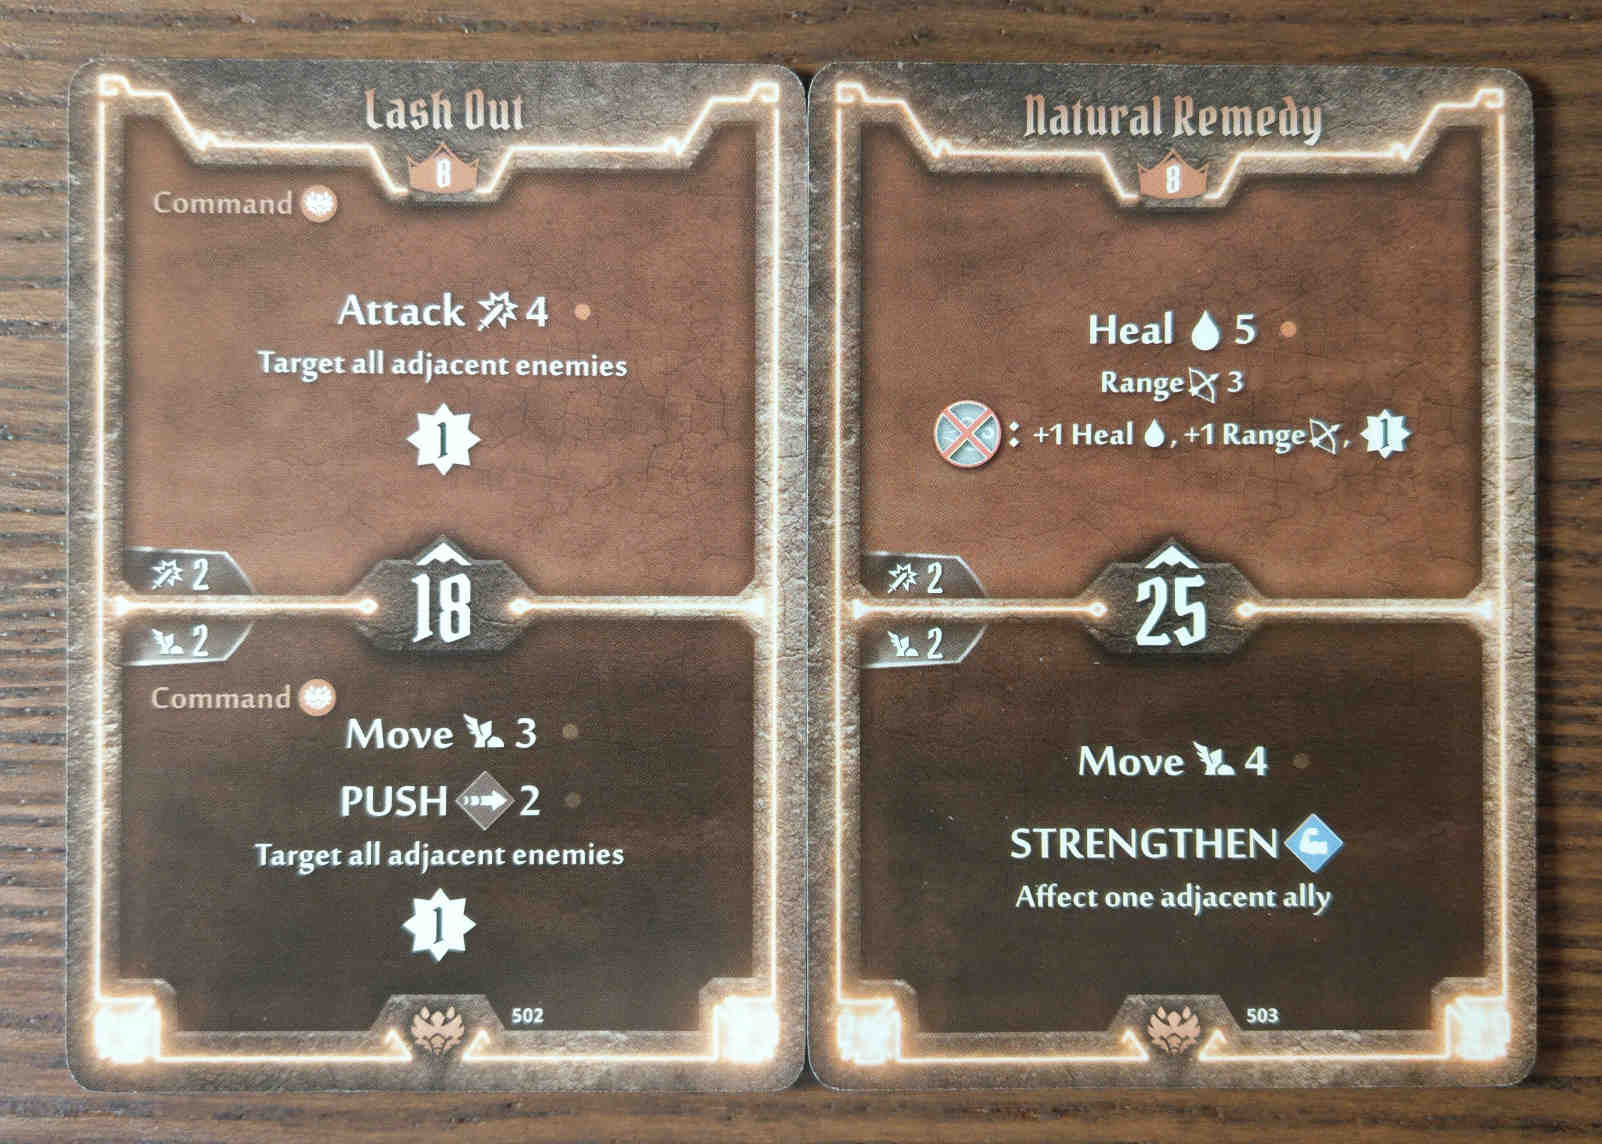 Beast Tyrant level 8 cards - Lash Out and Natural Remedy